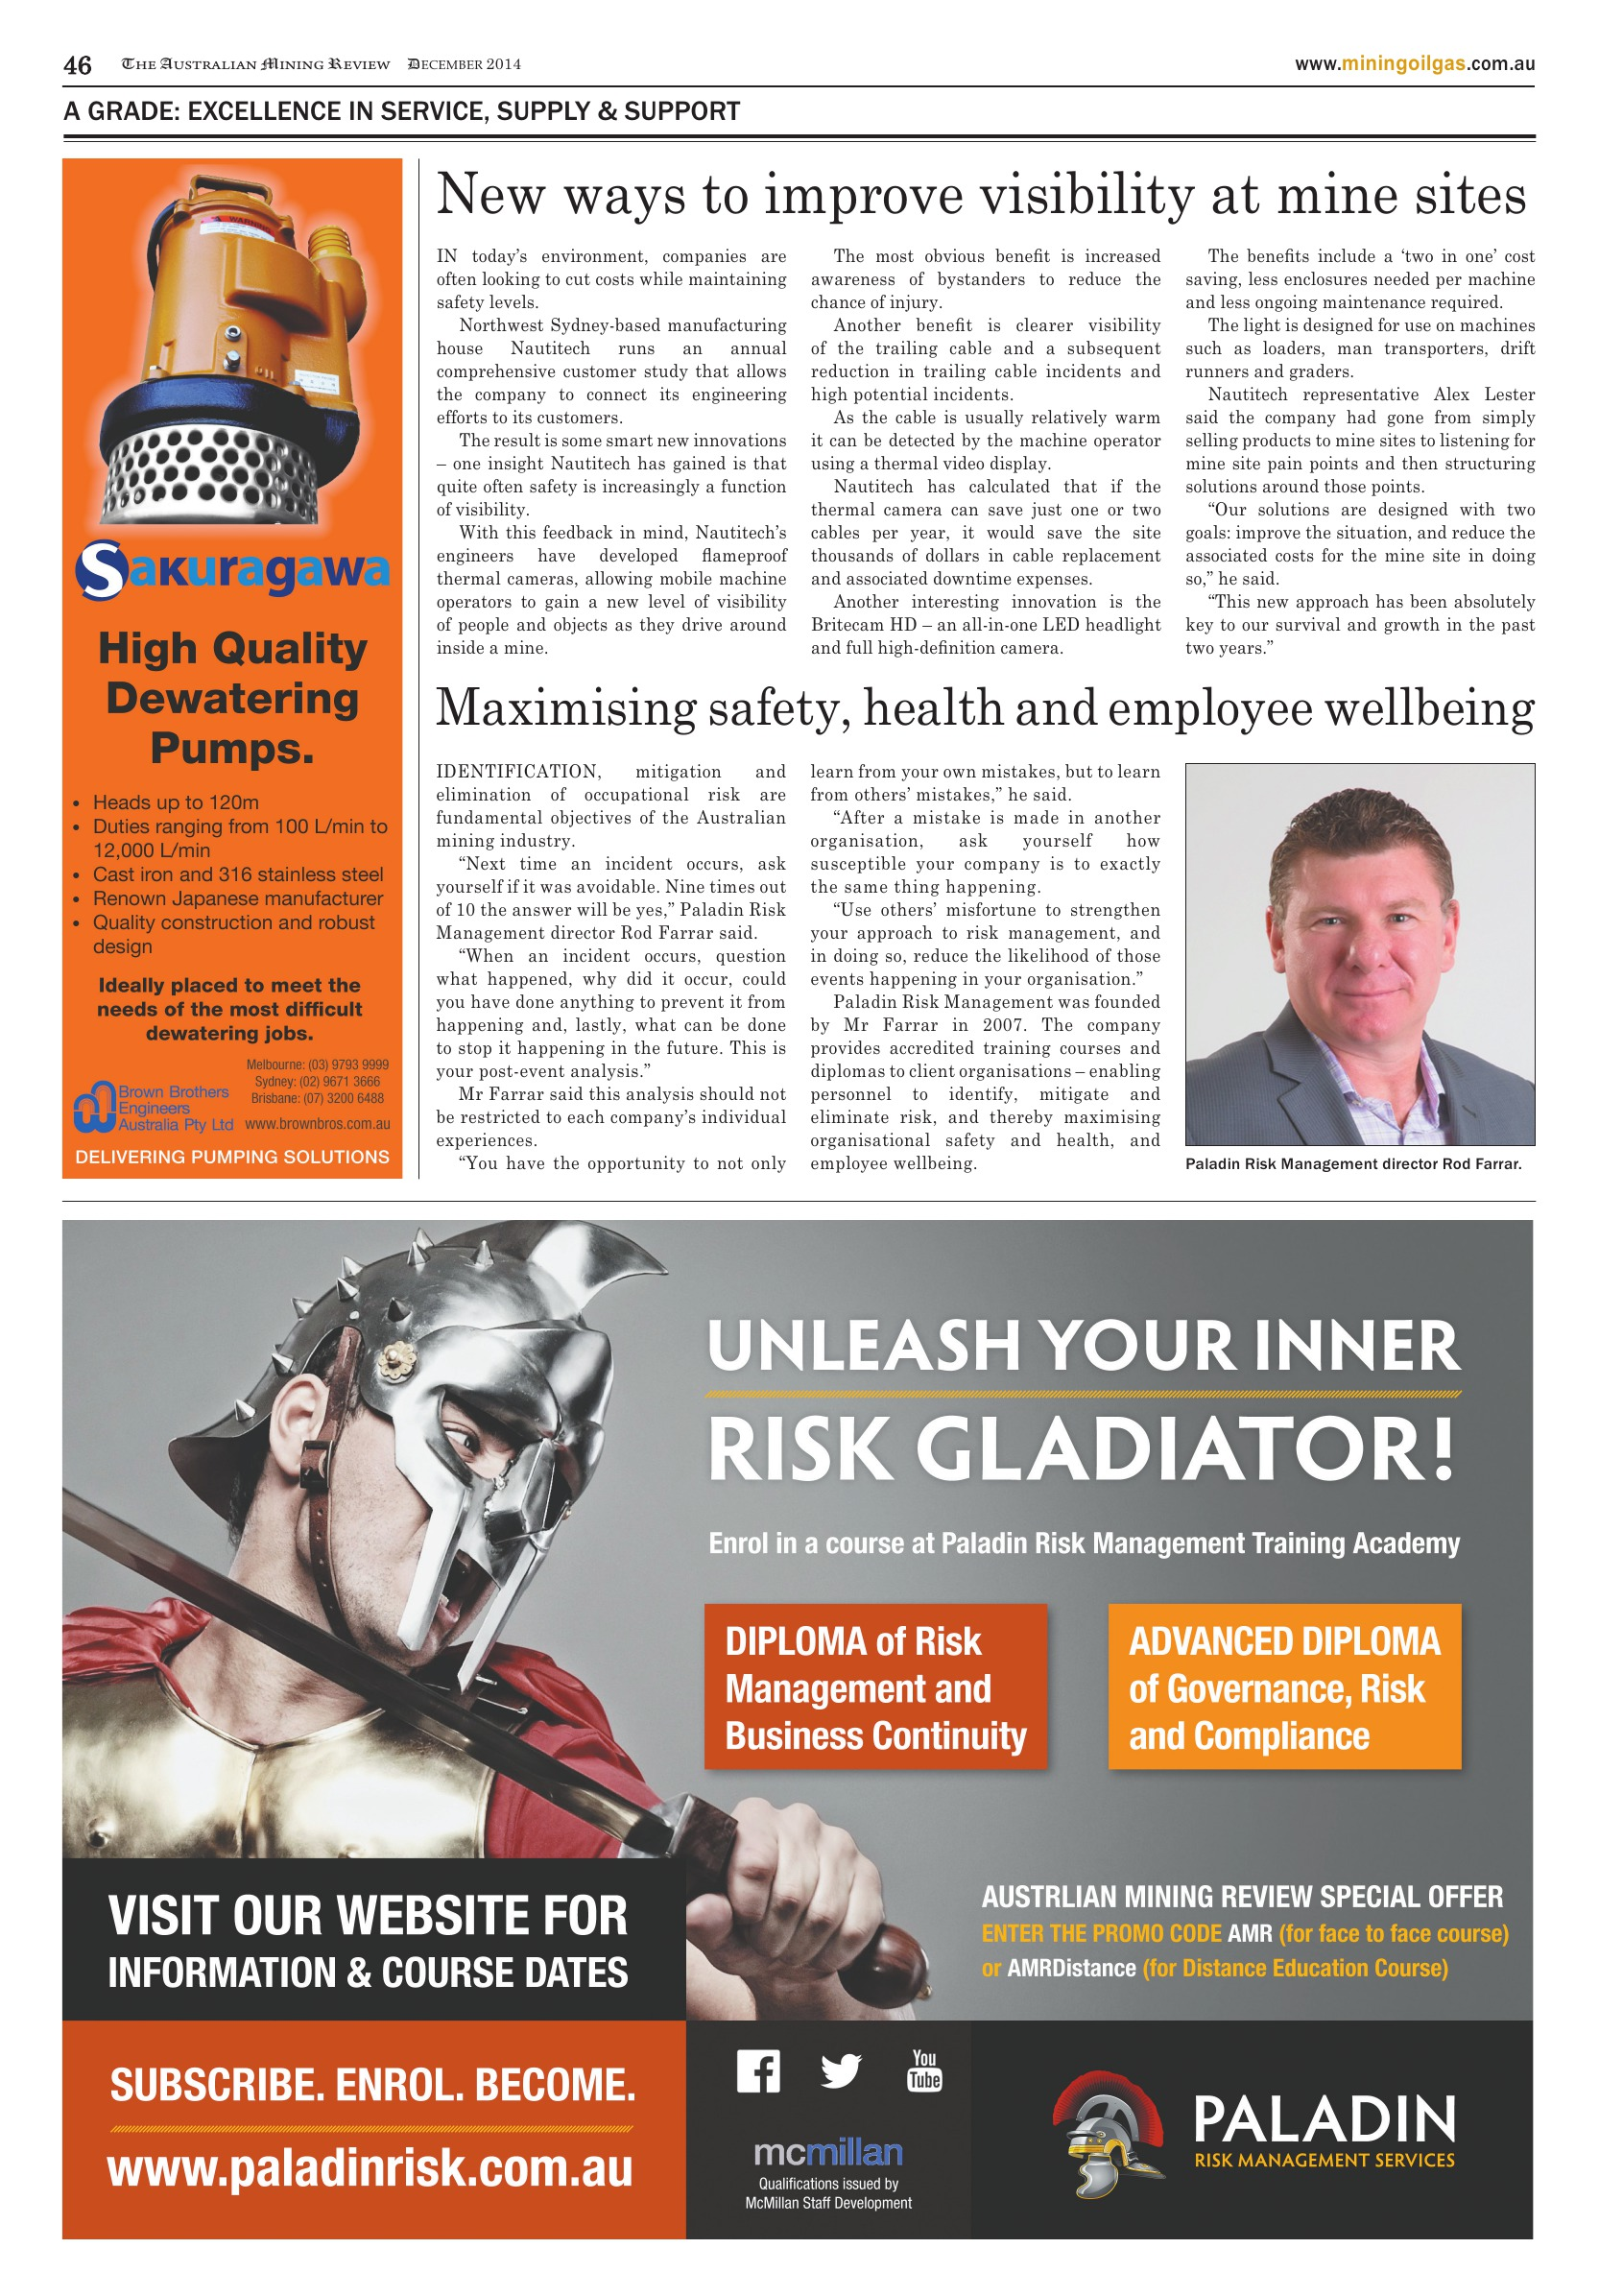 The Australian Mining Review, December 2014 – New ways to improve visibility at mine sites